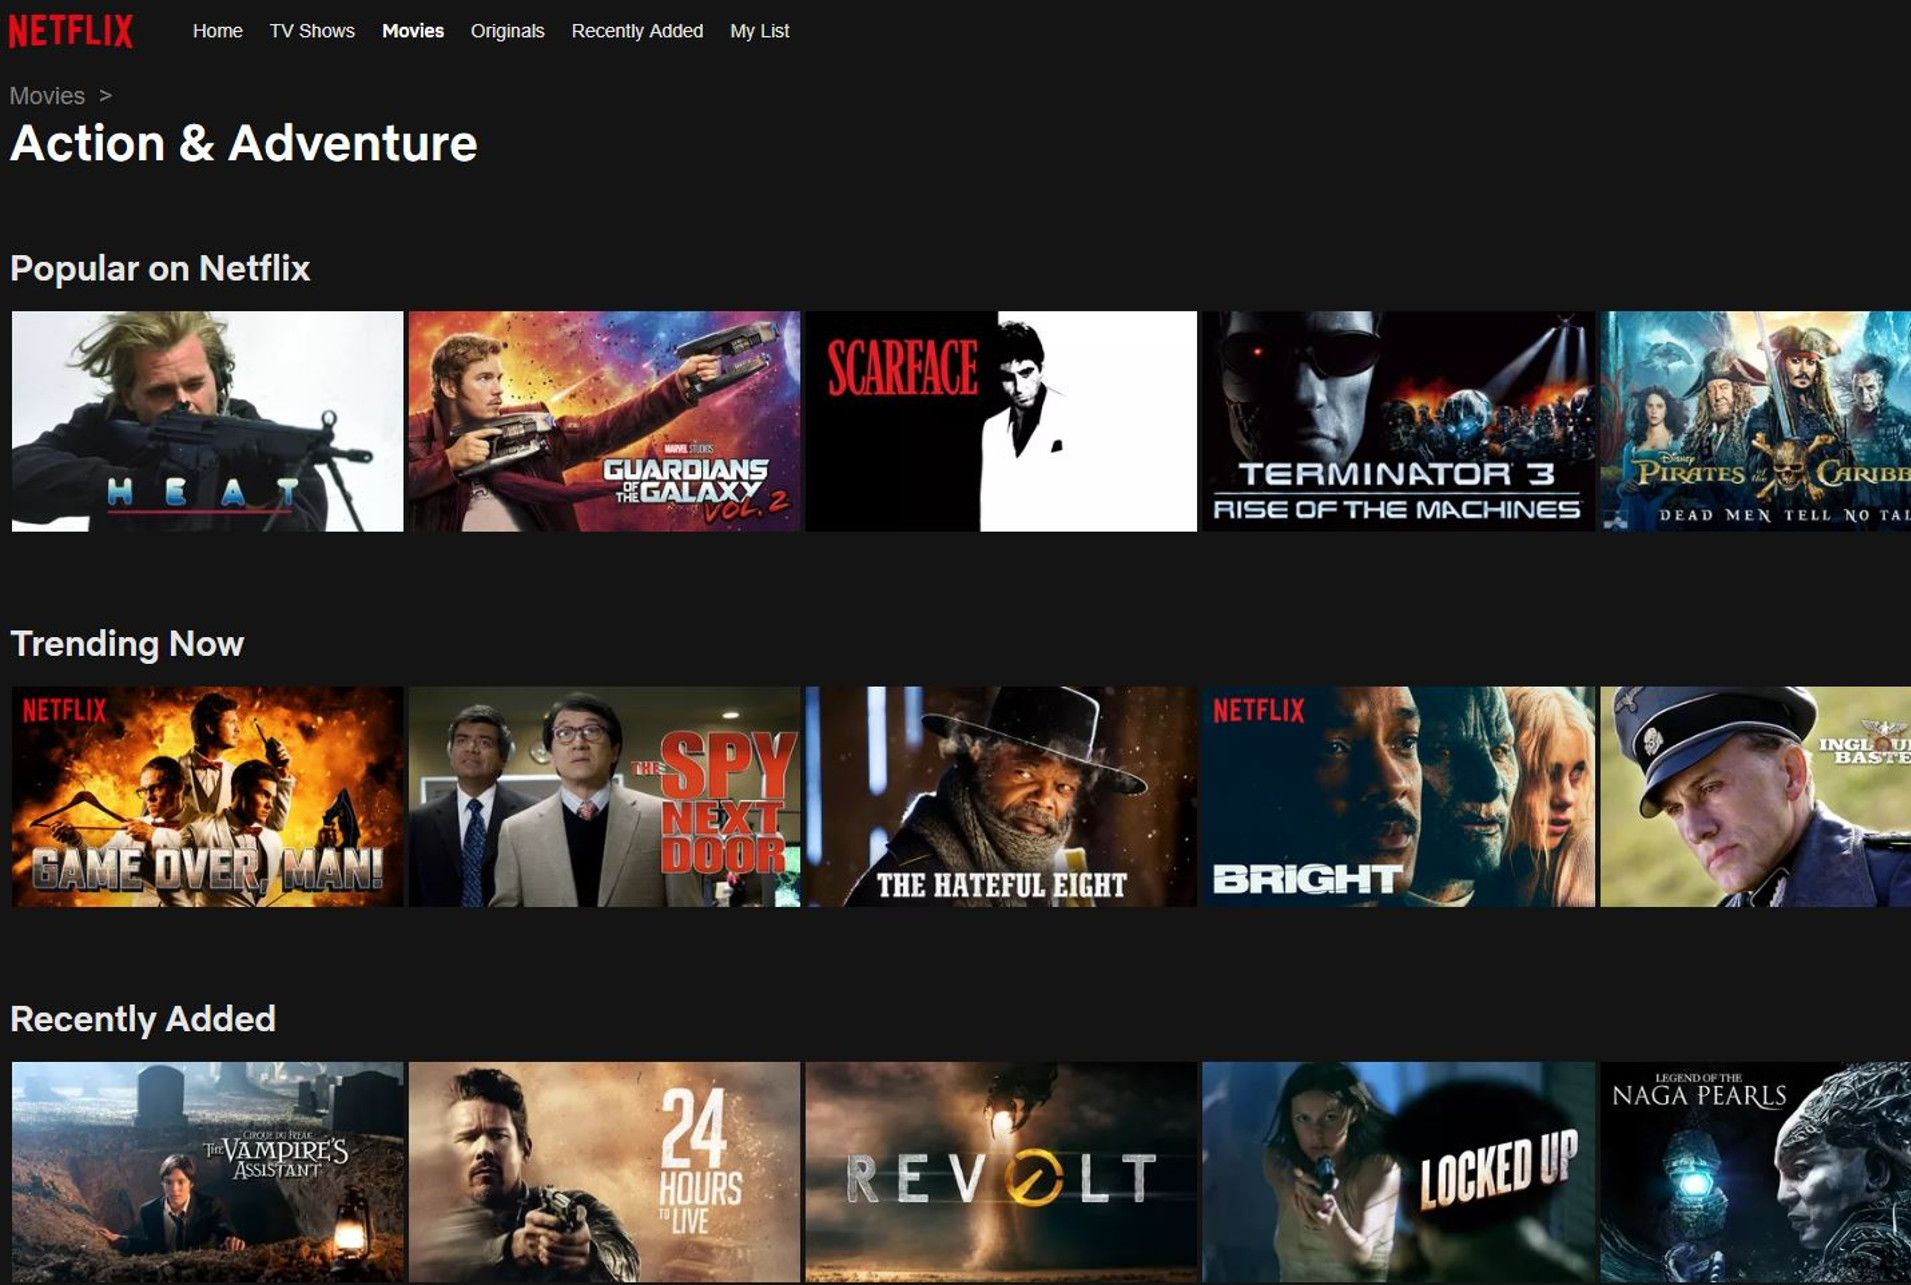 There's a Simple Trick to Sort Movies and TV Shows by Year on Netflix |  Mental Floss